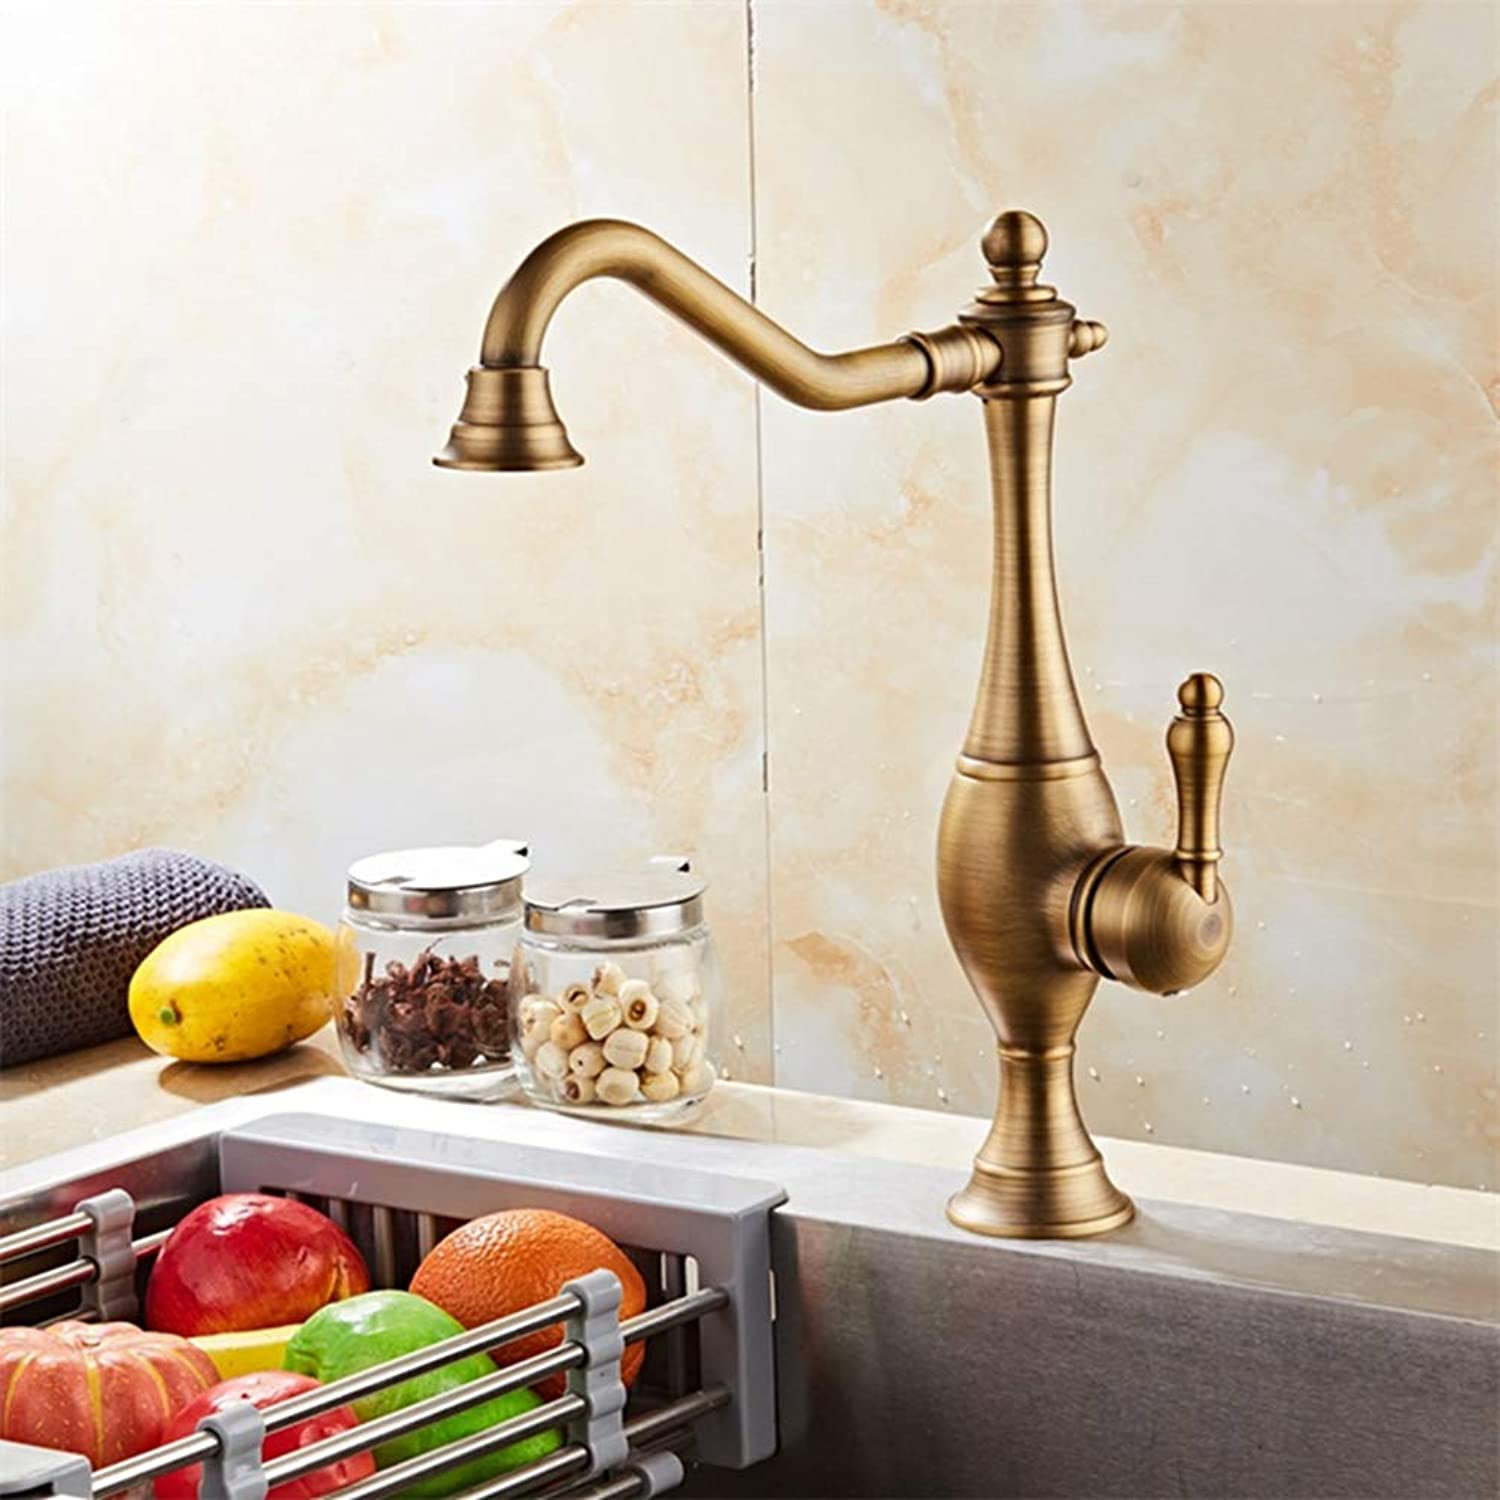 FZHLR Antique Brass Black Kitchen Faucet Mixer Cold and Hot Kitchen Tap Single Hole Water Tap Bathroom Faucets,Antique Bronze